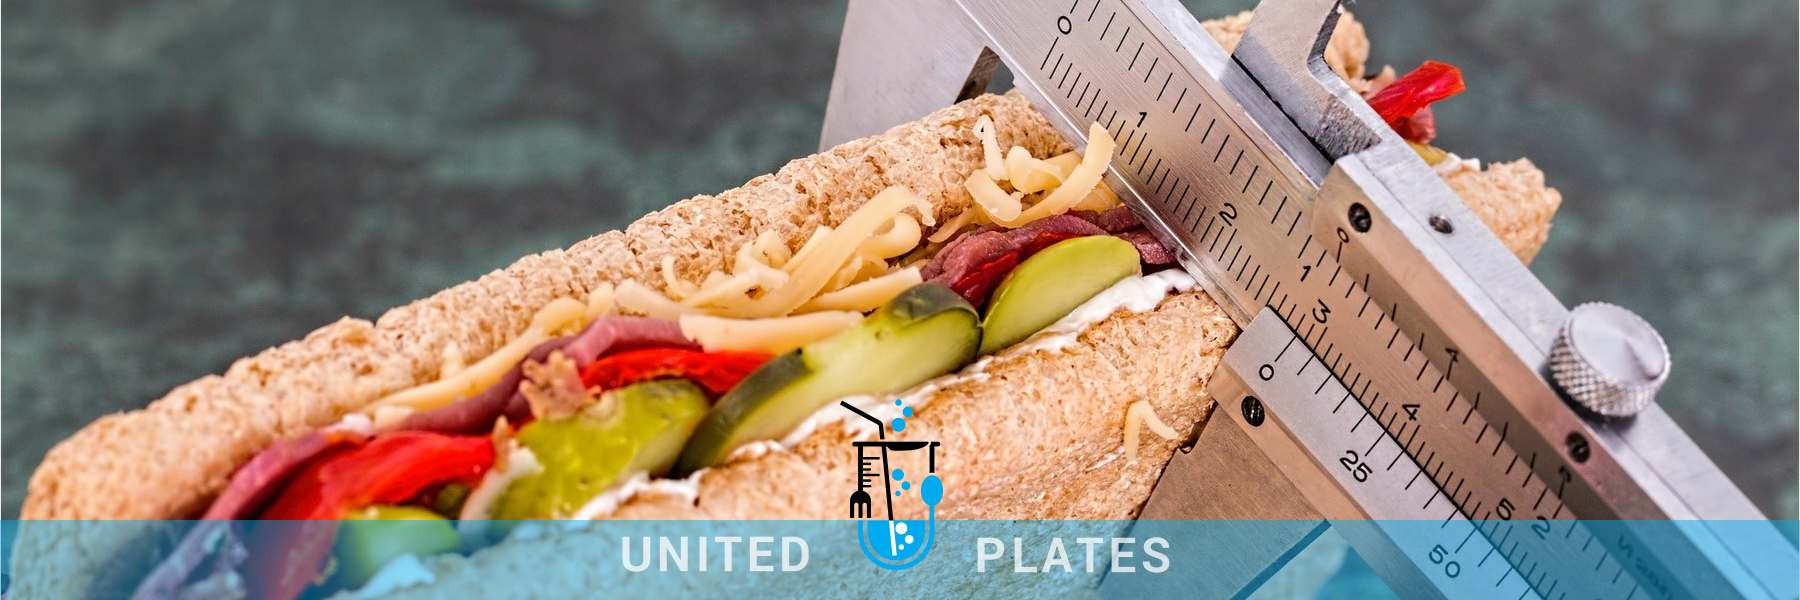 united plates Health and Nutrition food consultancy dublin